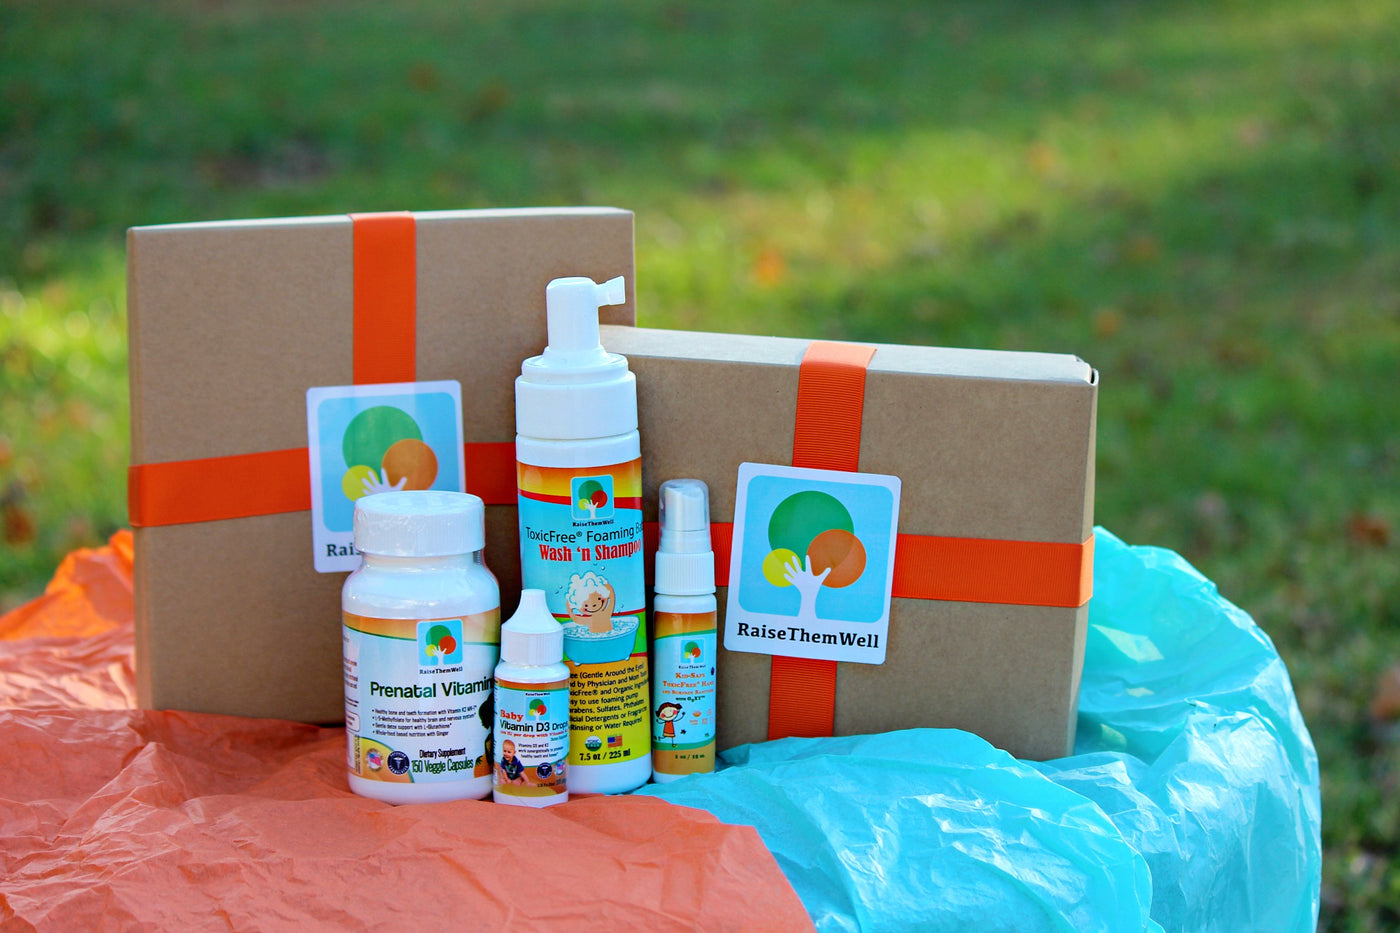 New Baby Gift Box:  Prenatal Vitamin, Vitamin D3 and K2 Drops, Hand and Surface Sanitizer and Foaming Baby Wash 'N Shampoo